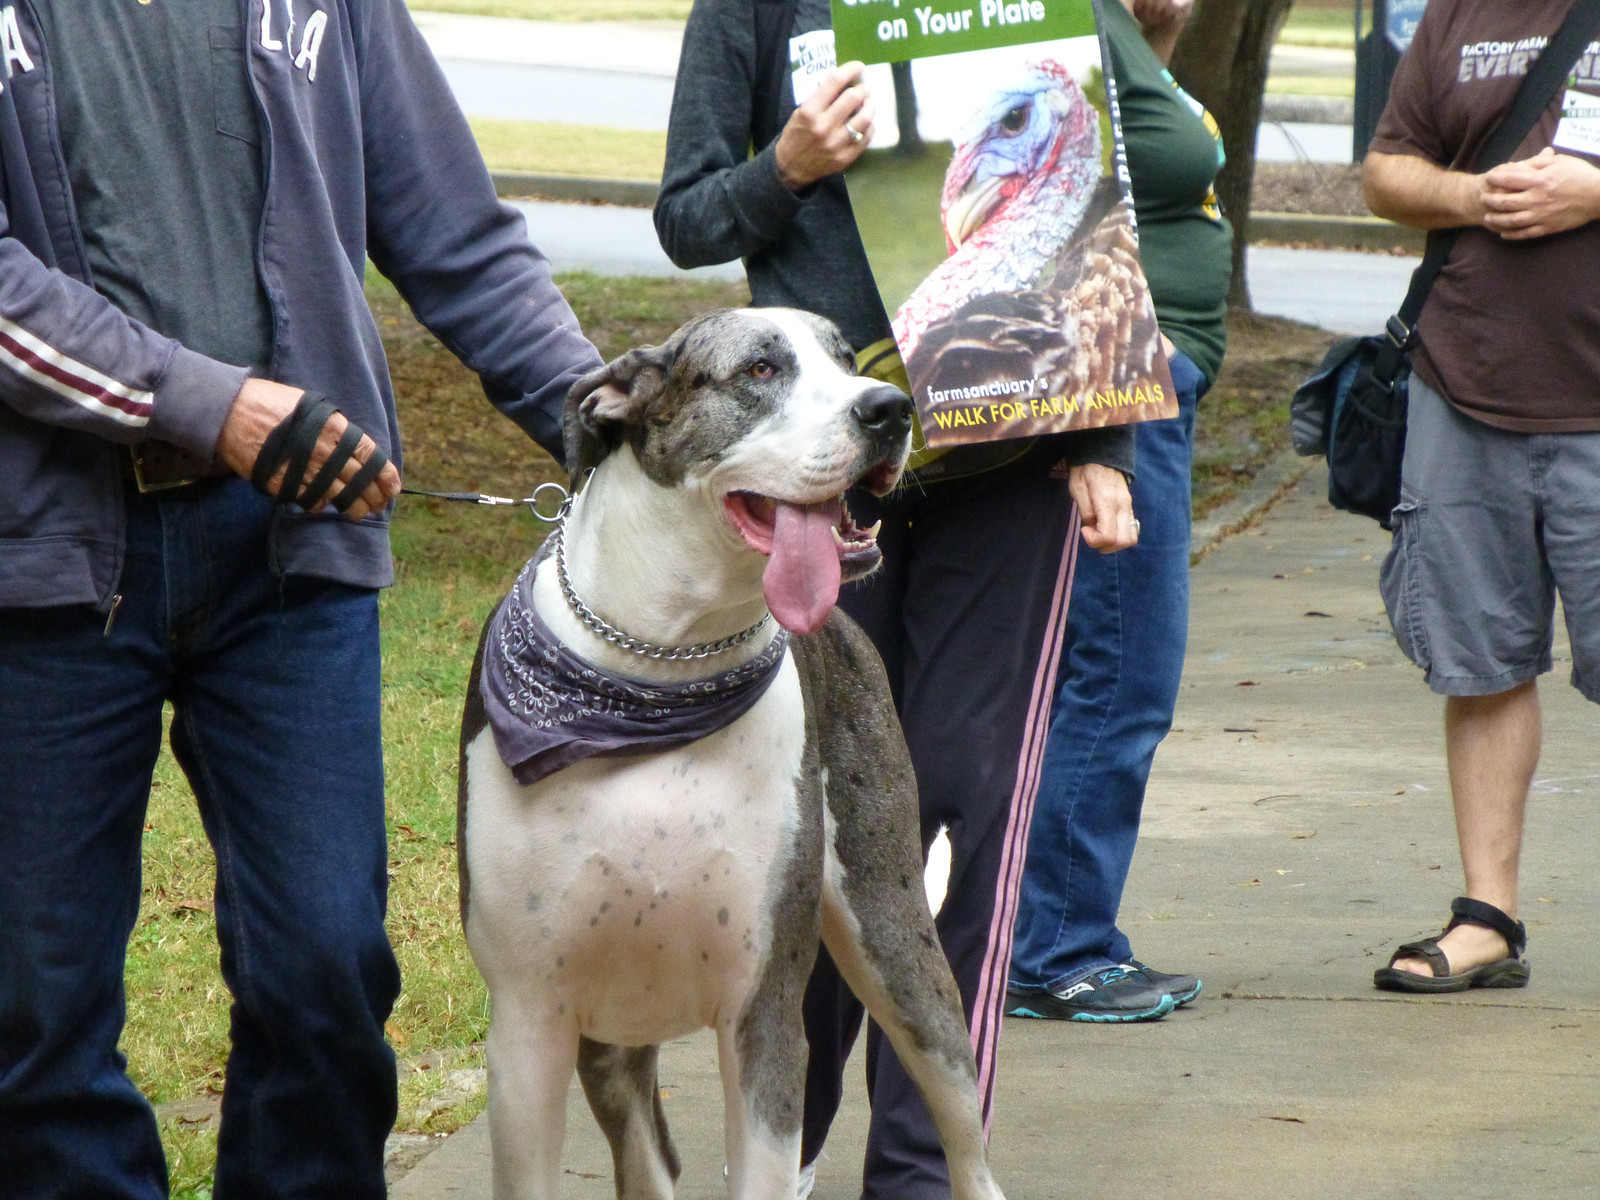 walk-for-animals-2013-10-19-g